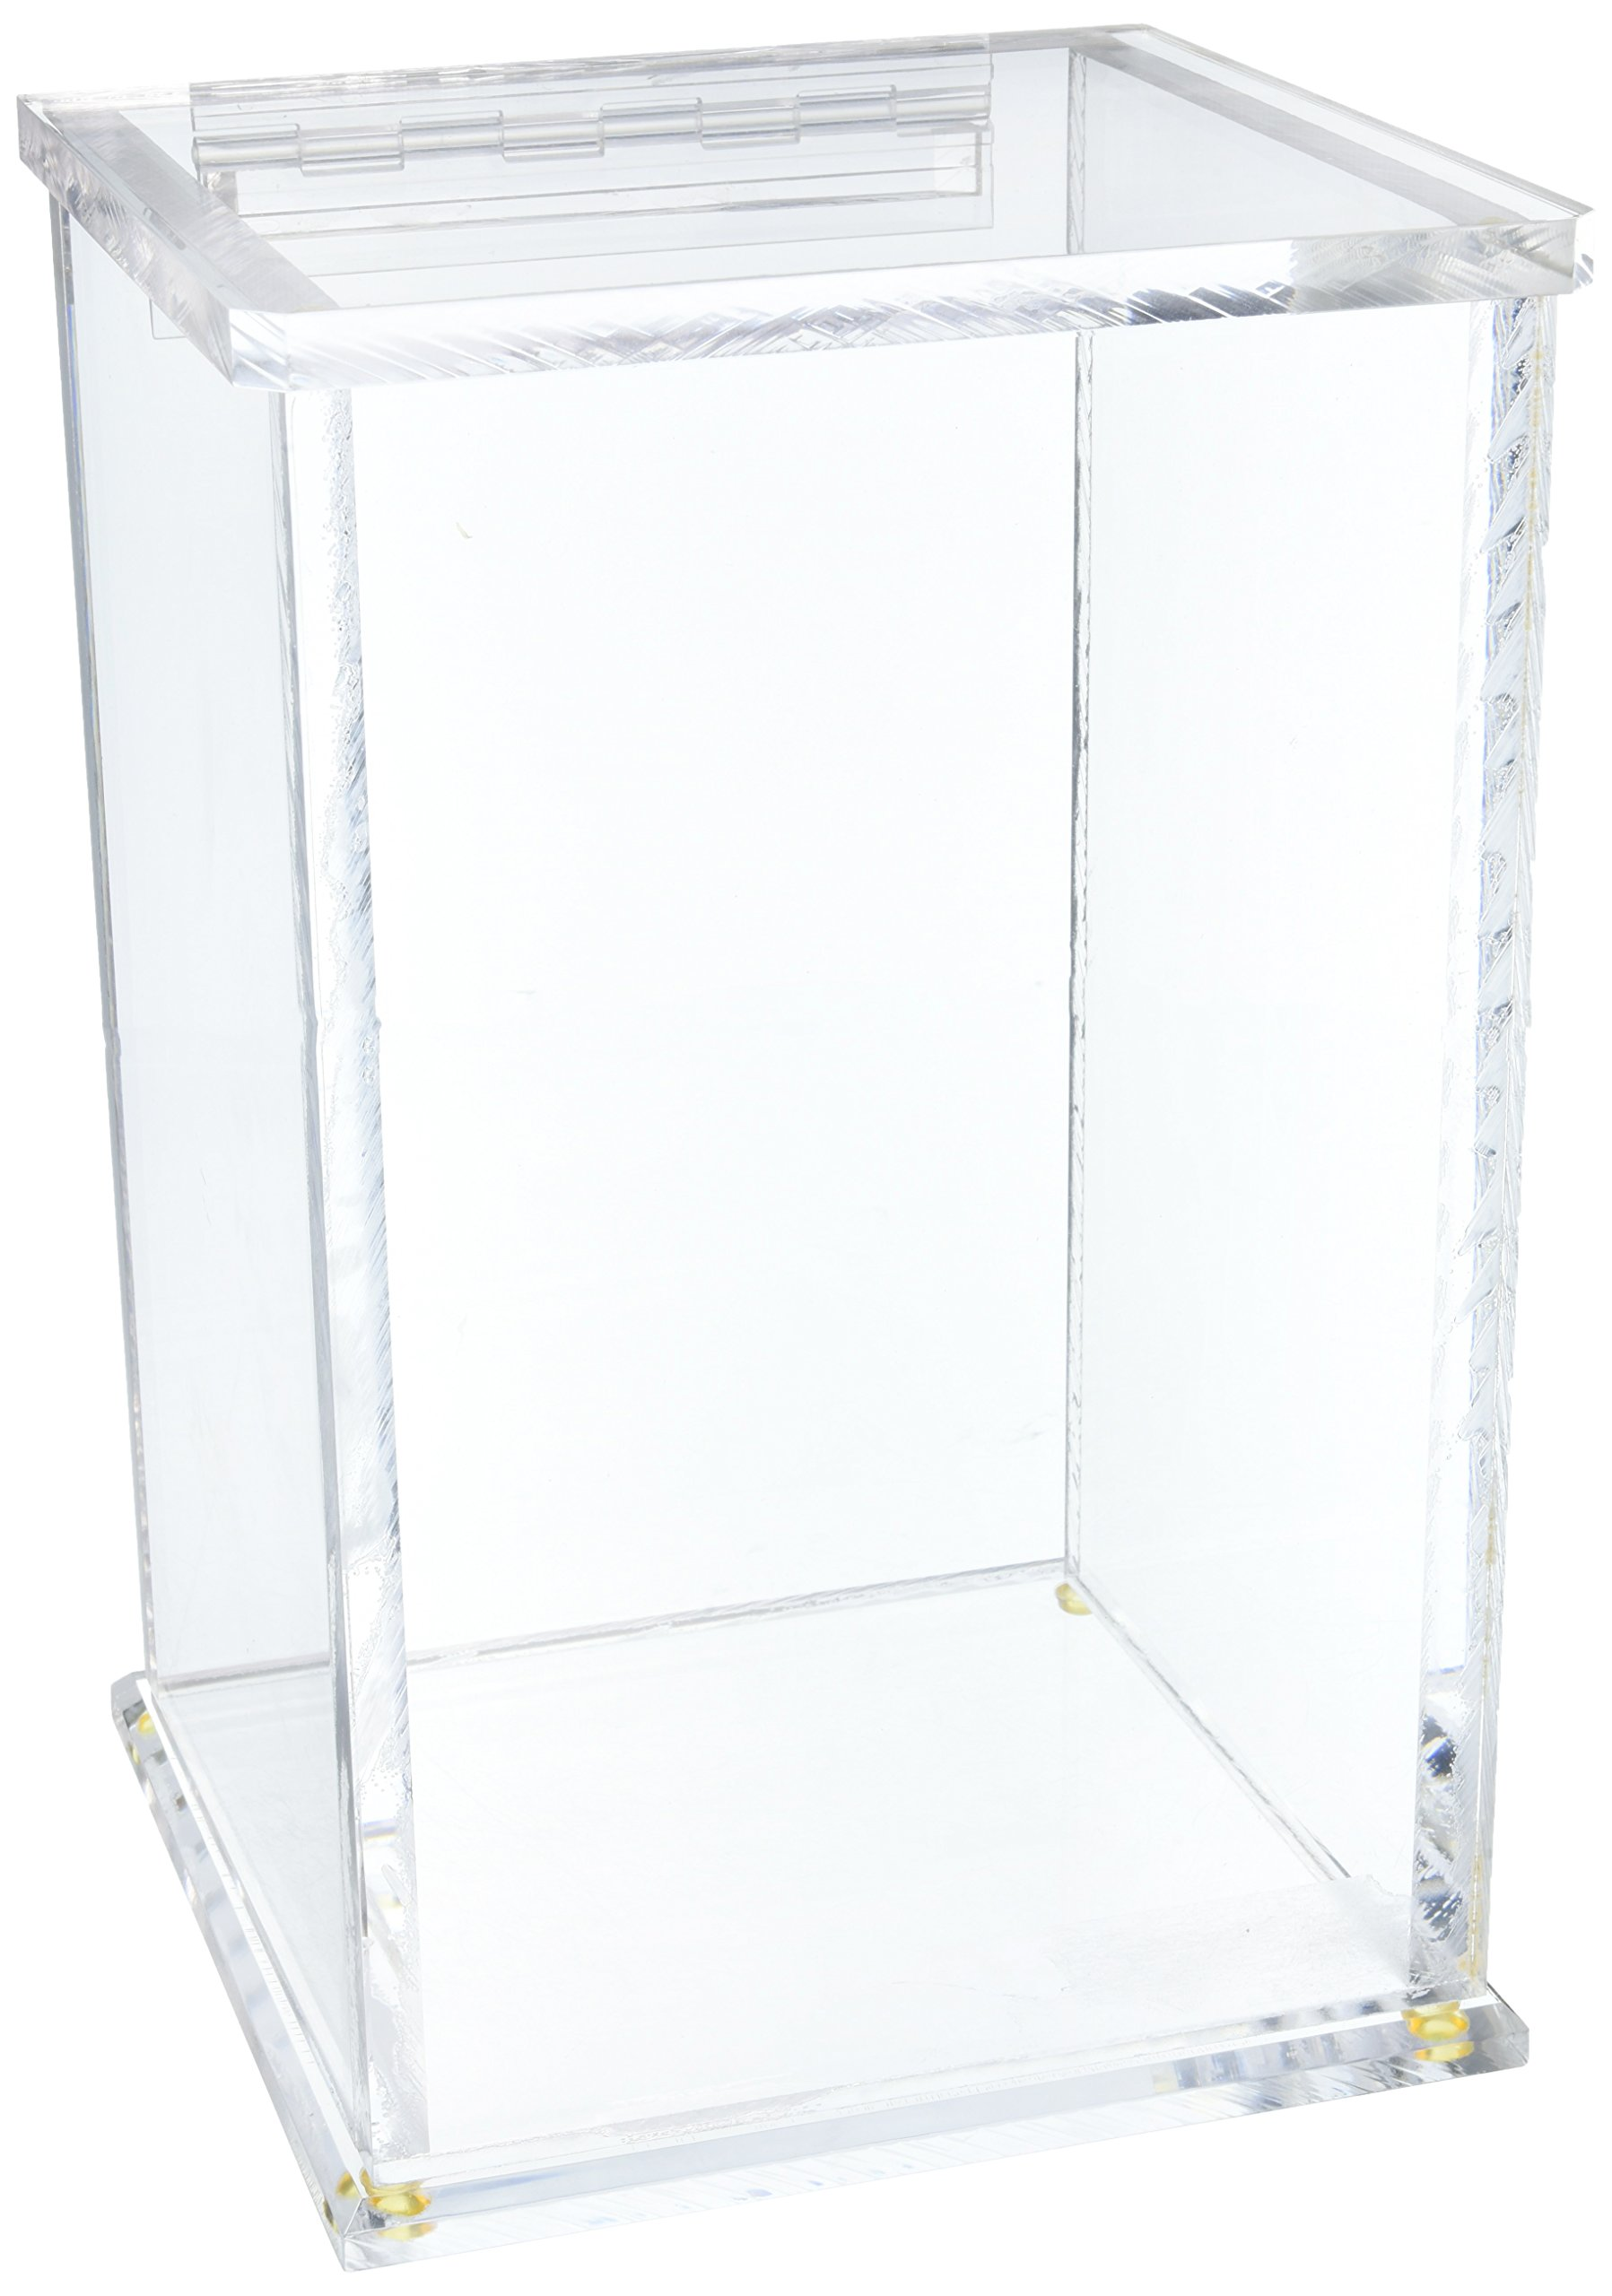 IBI Scientific WH-80 Beta-Gard Acrylic 1Gallon Jug Waste Container with Hinged Lid, 8-3/4'' Width x 13-1/4'' Height x 8-3/4'' Depth